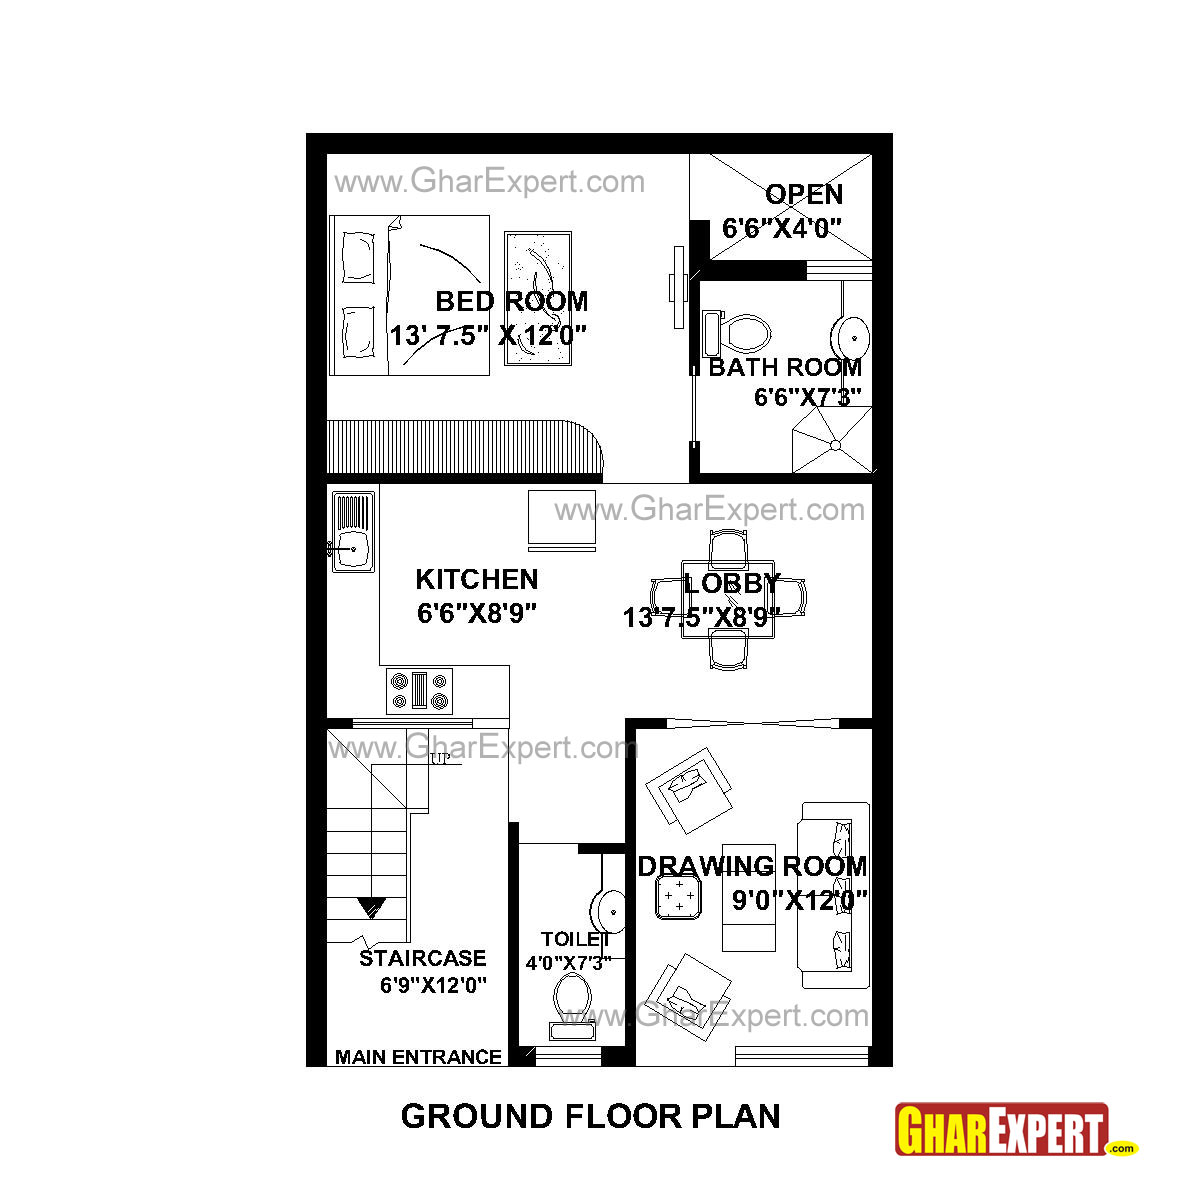 House plan for 22 feet by 35 feet plot plot size 86 30 by 45 house plans